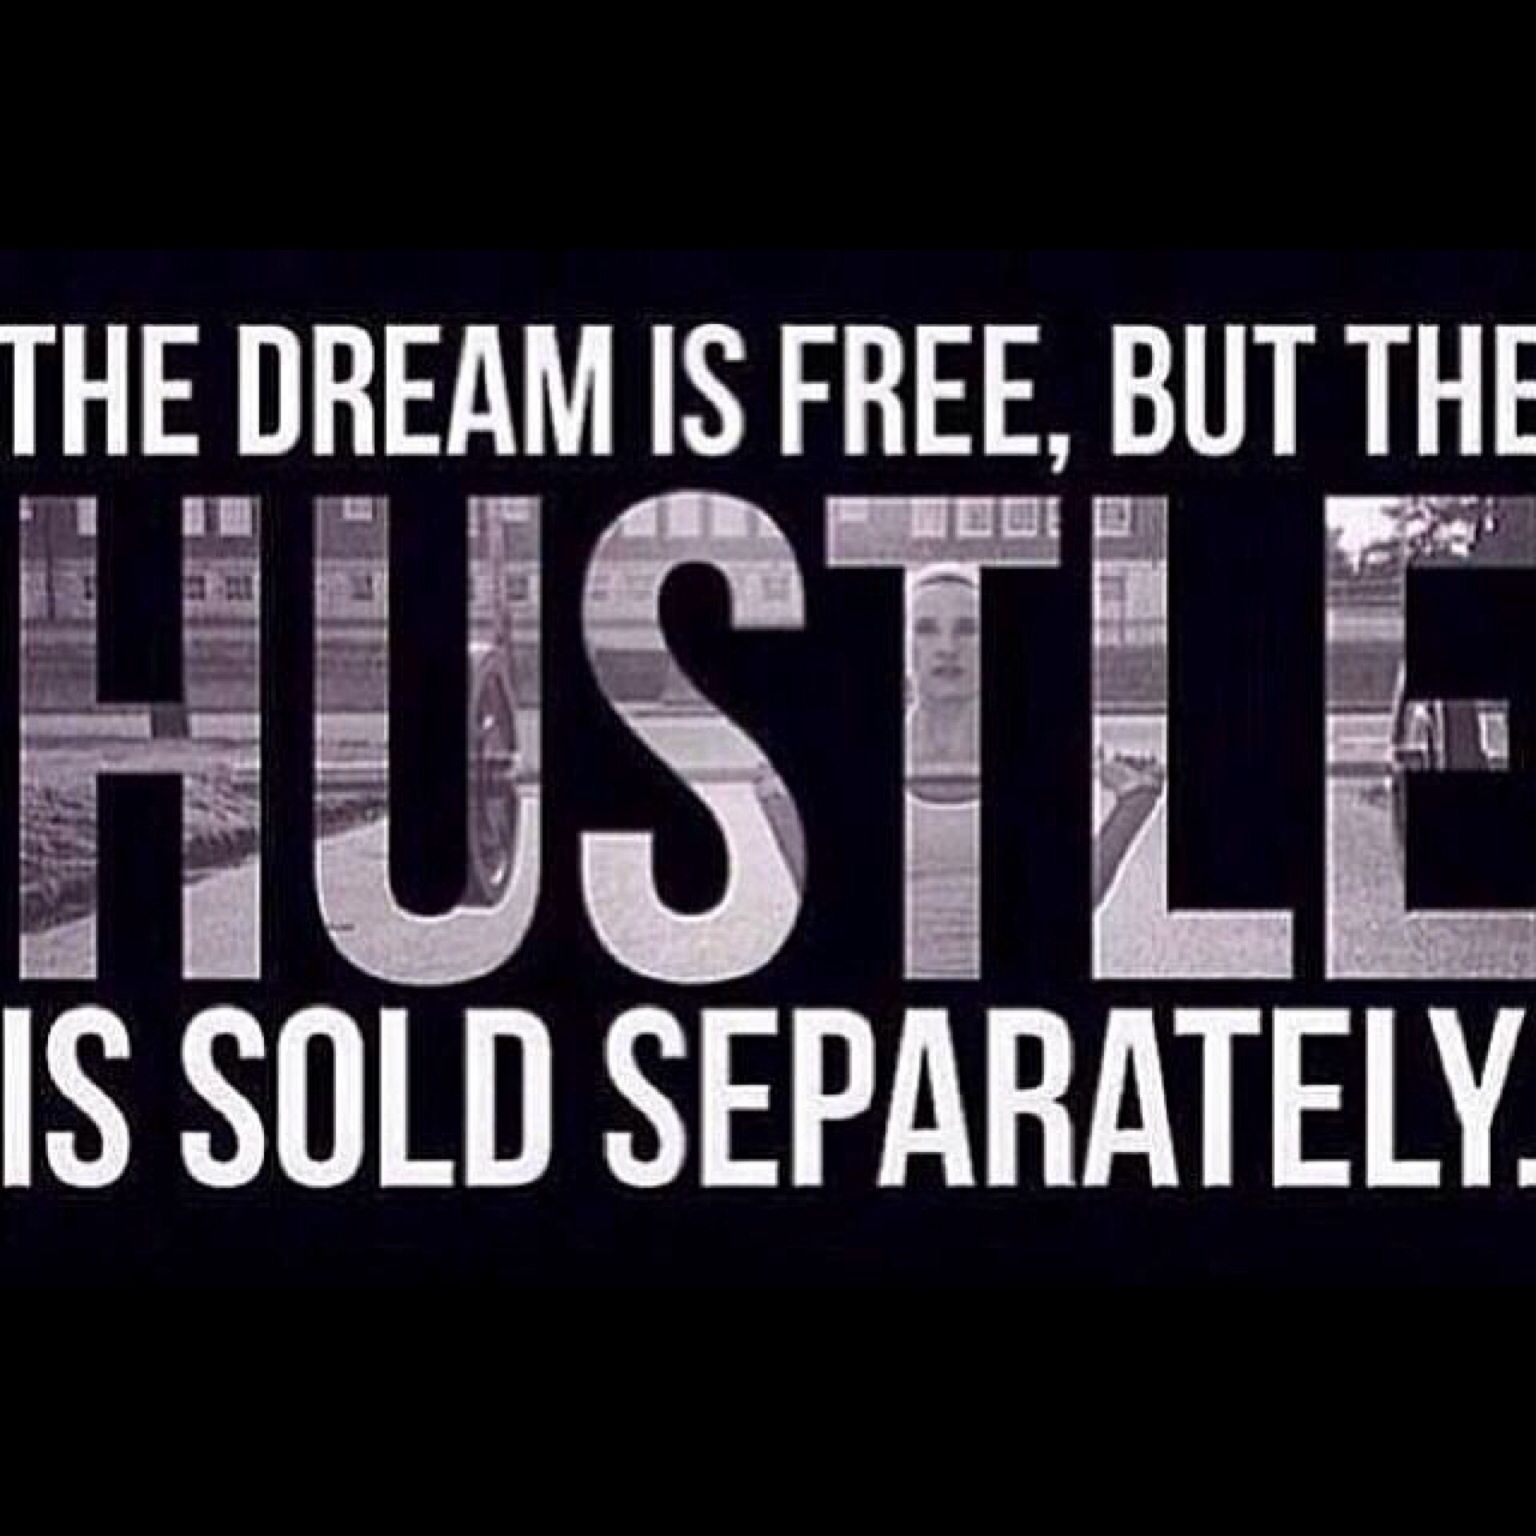 Hustle Hard Quotes Hustle Hard Quotes